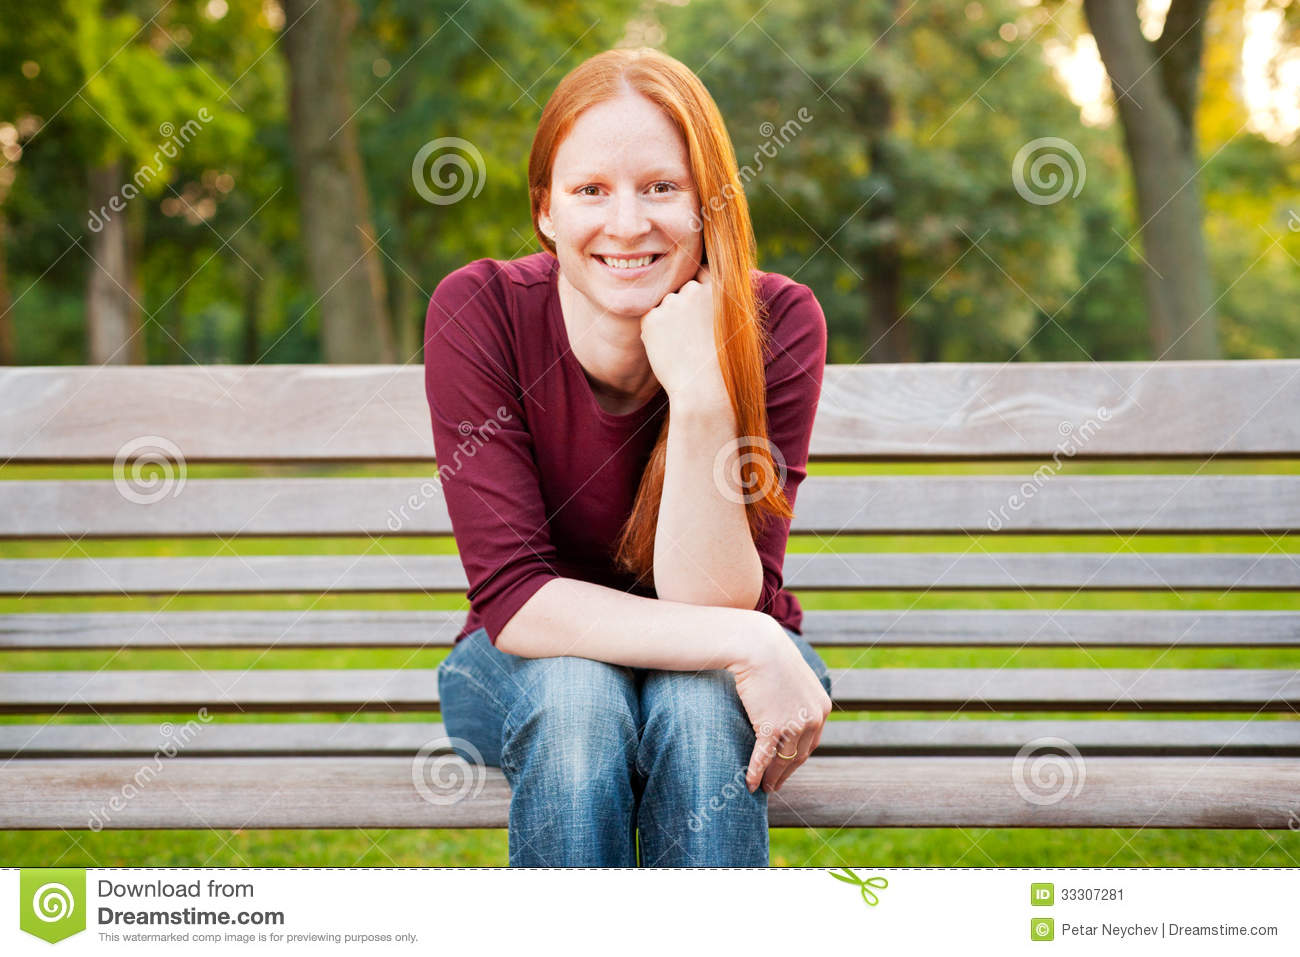 happy-woman-sitting-bench-young-caucasian-smiling-camera-33307281.jpg